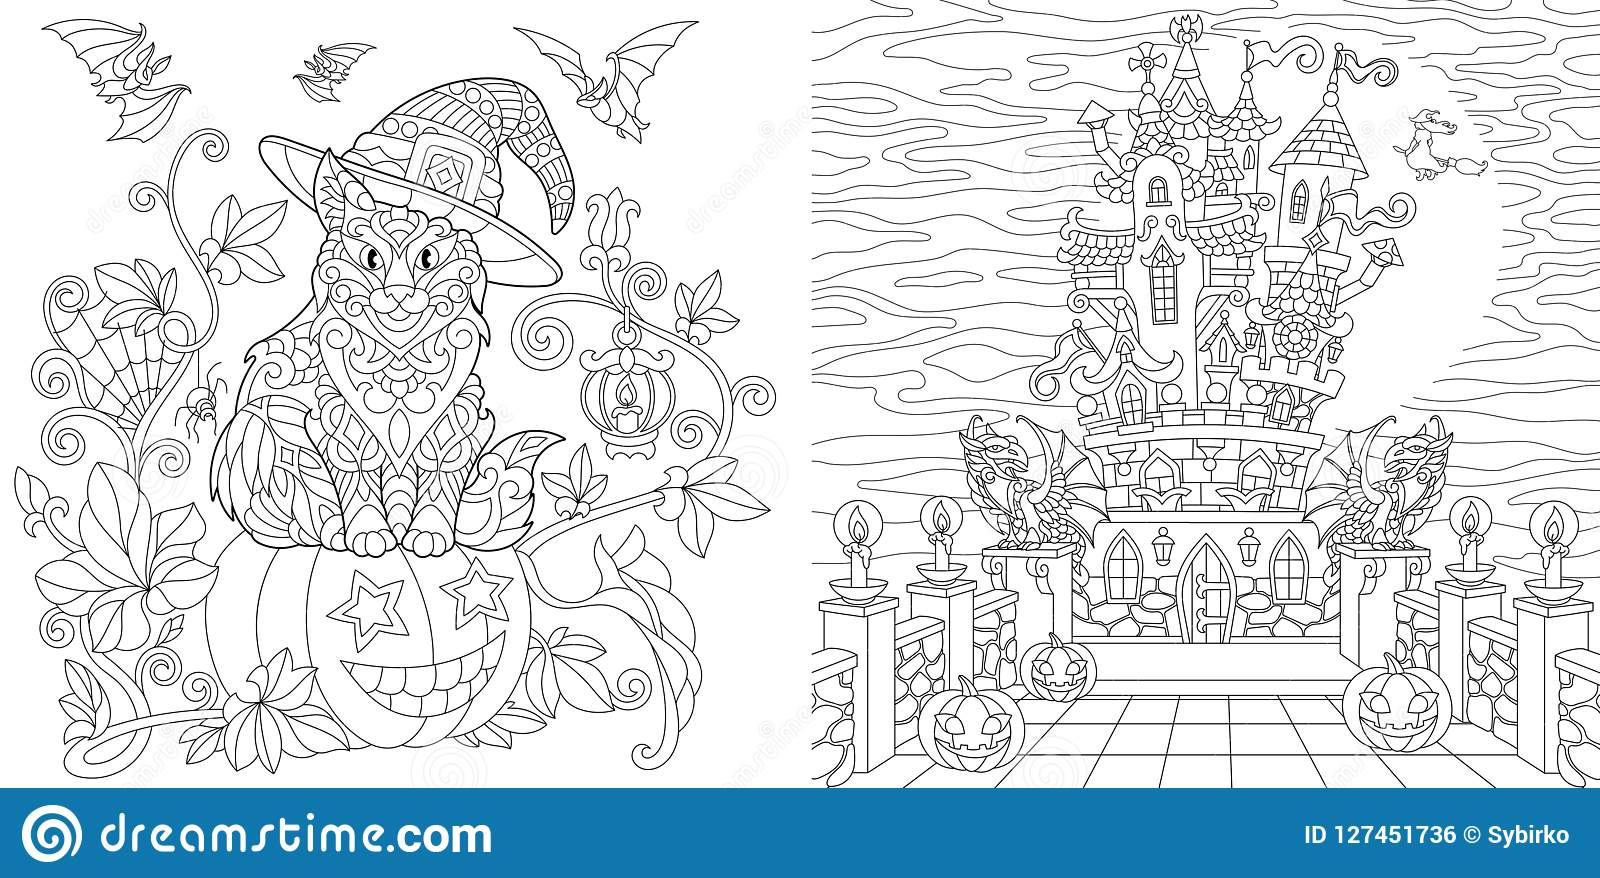 Halloween Coloring Pages Stock Vector  Illustration Of Drawn